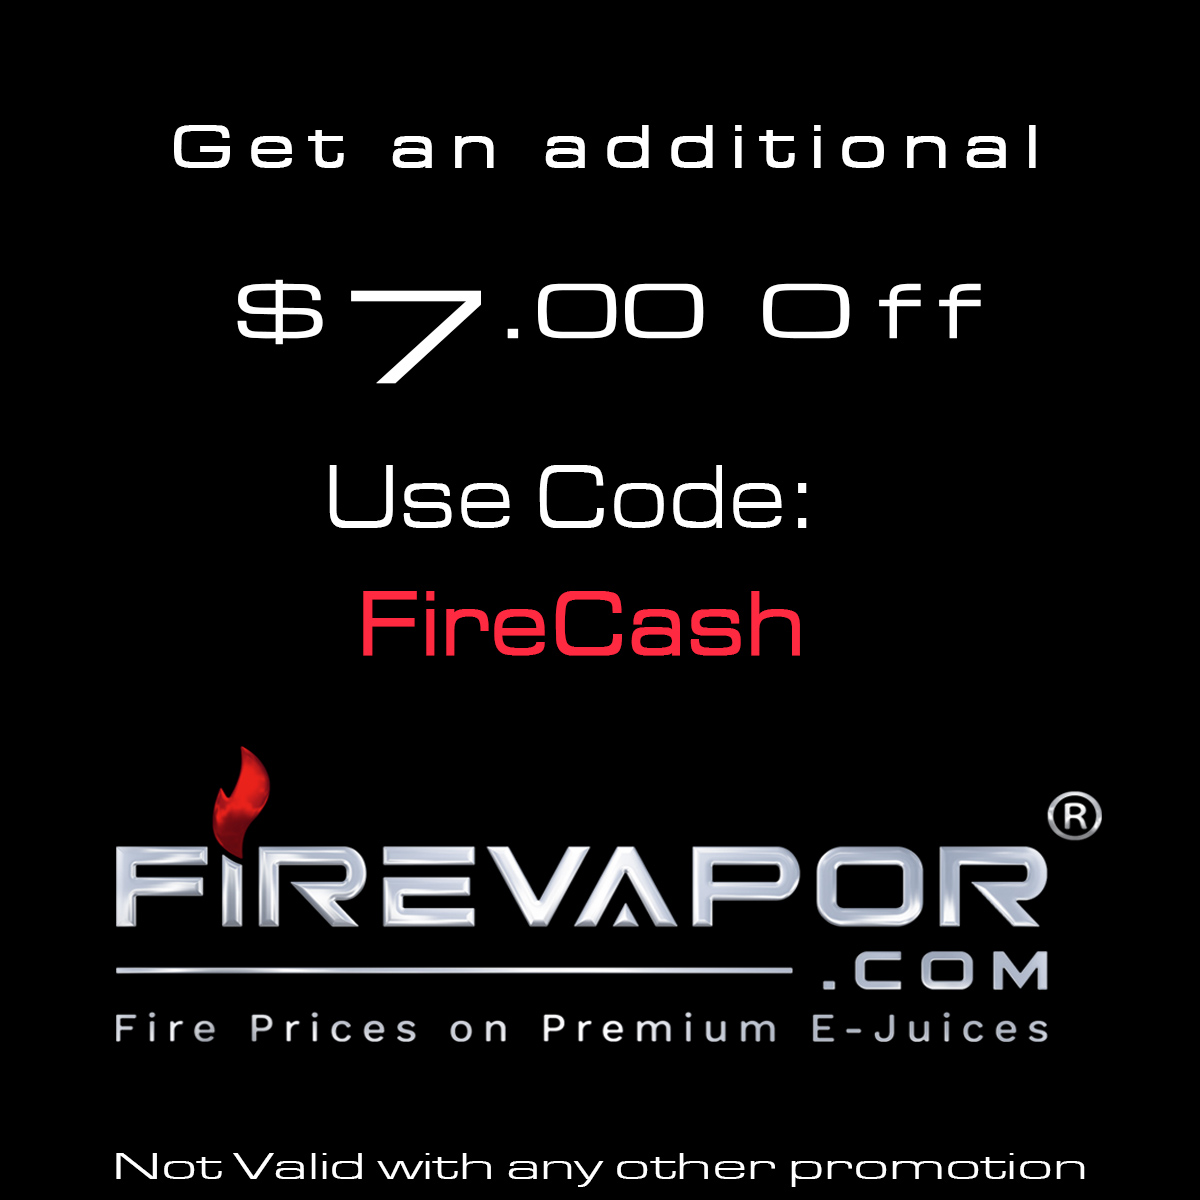 Fire Vapor Coupon Codes and Coupons